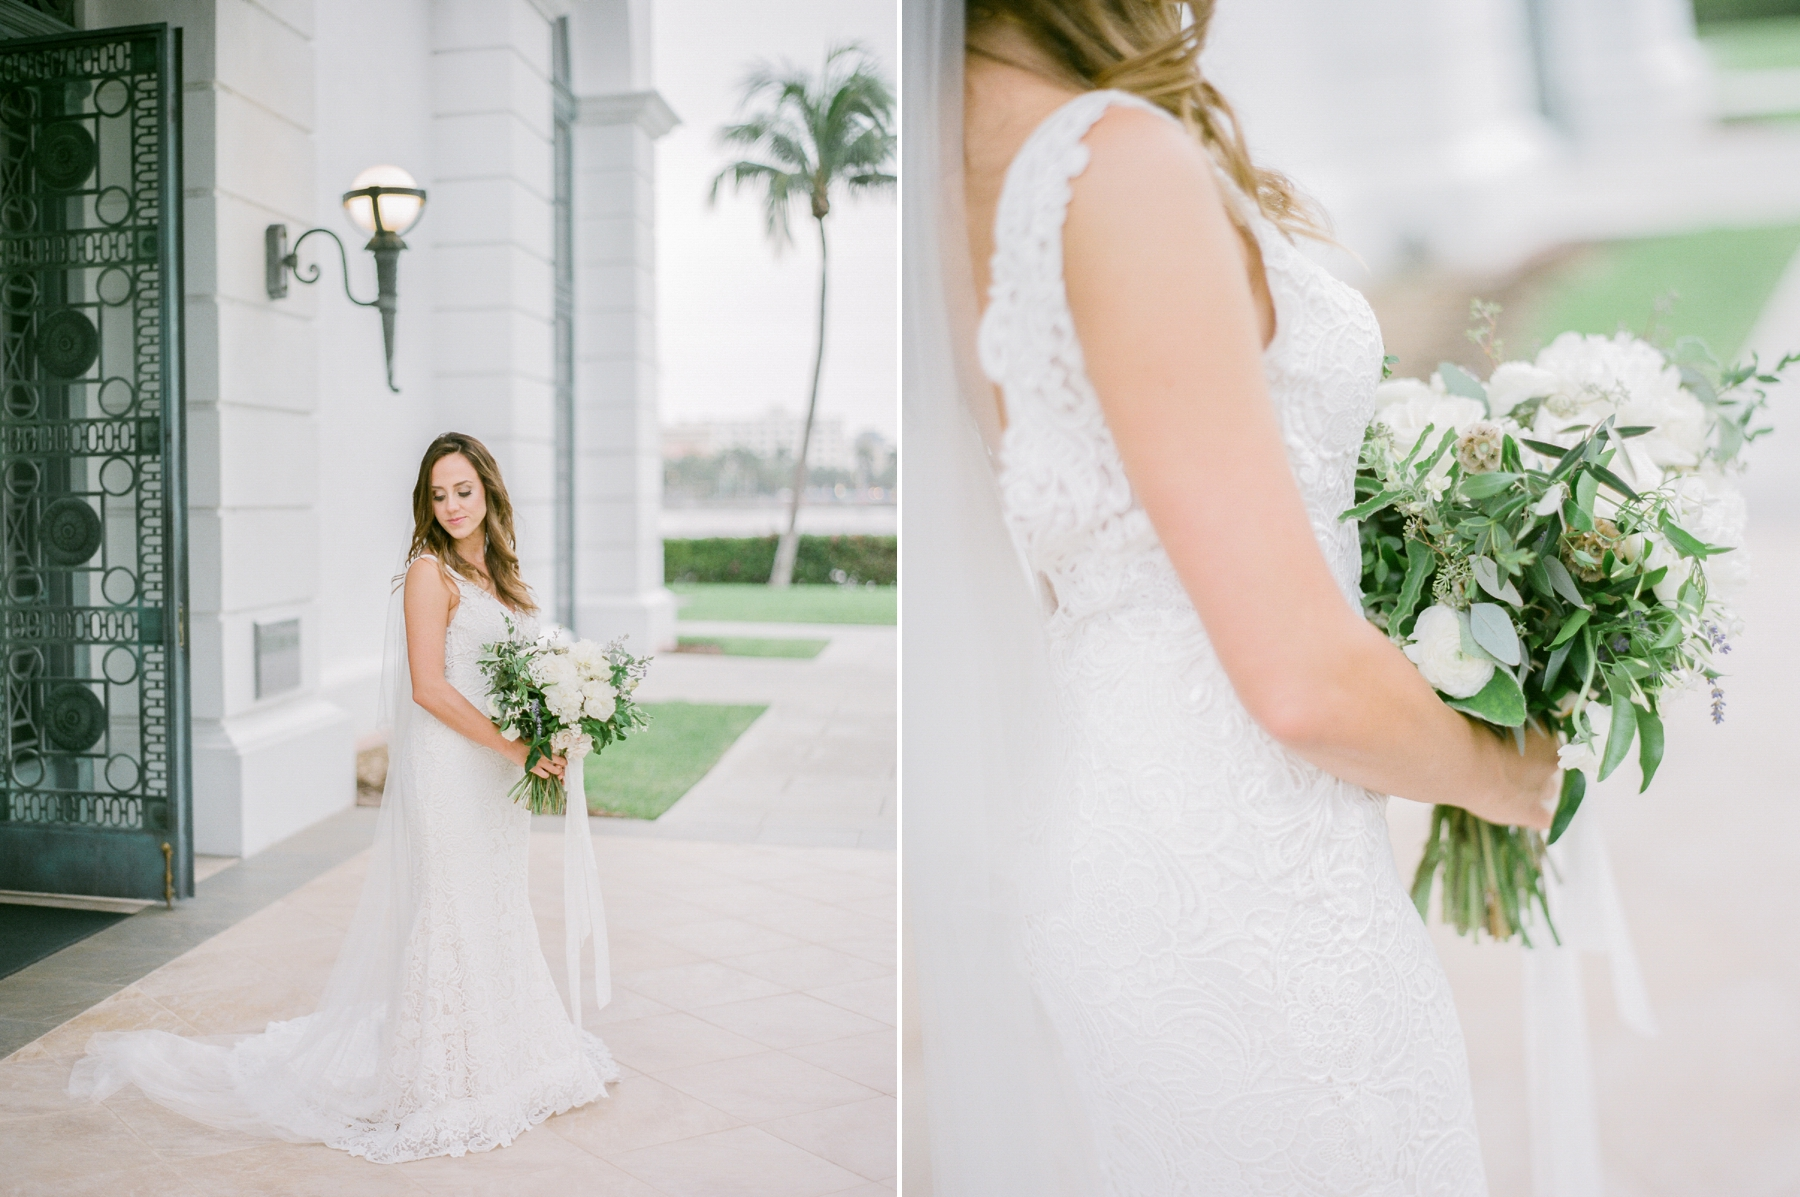 Bridal portraits - Miami film photographer